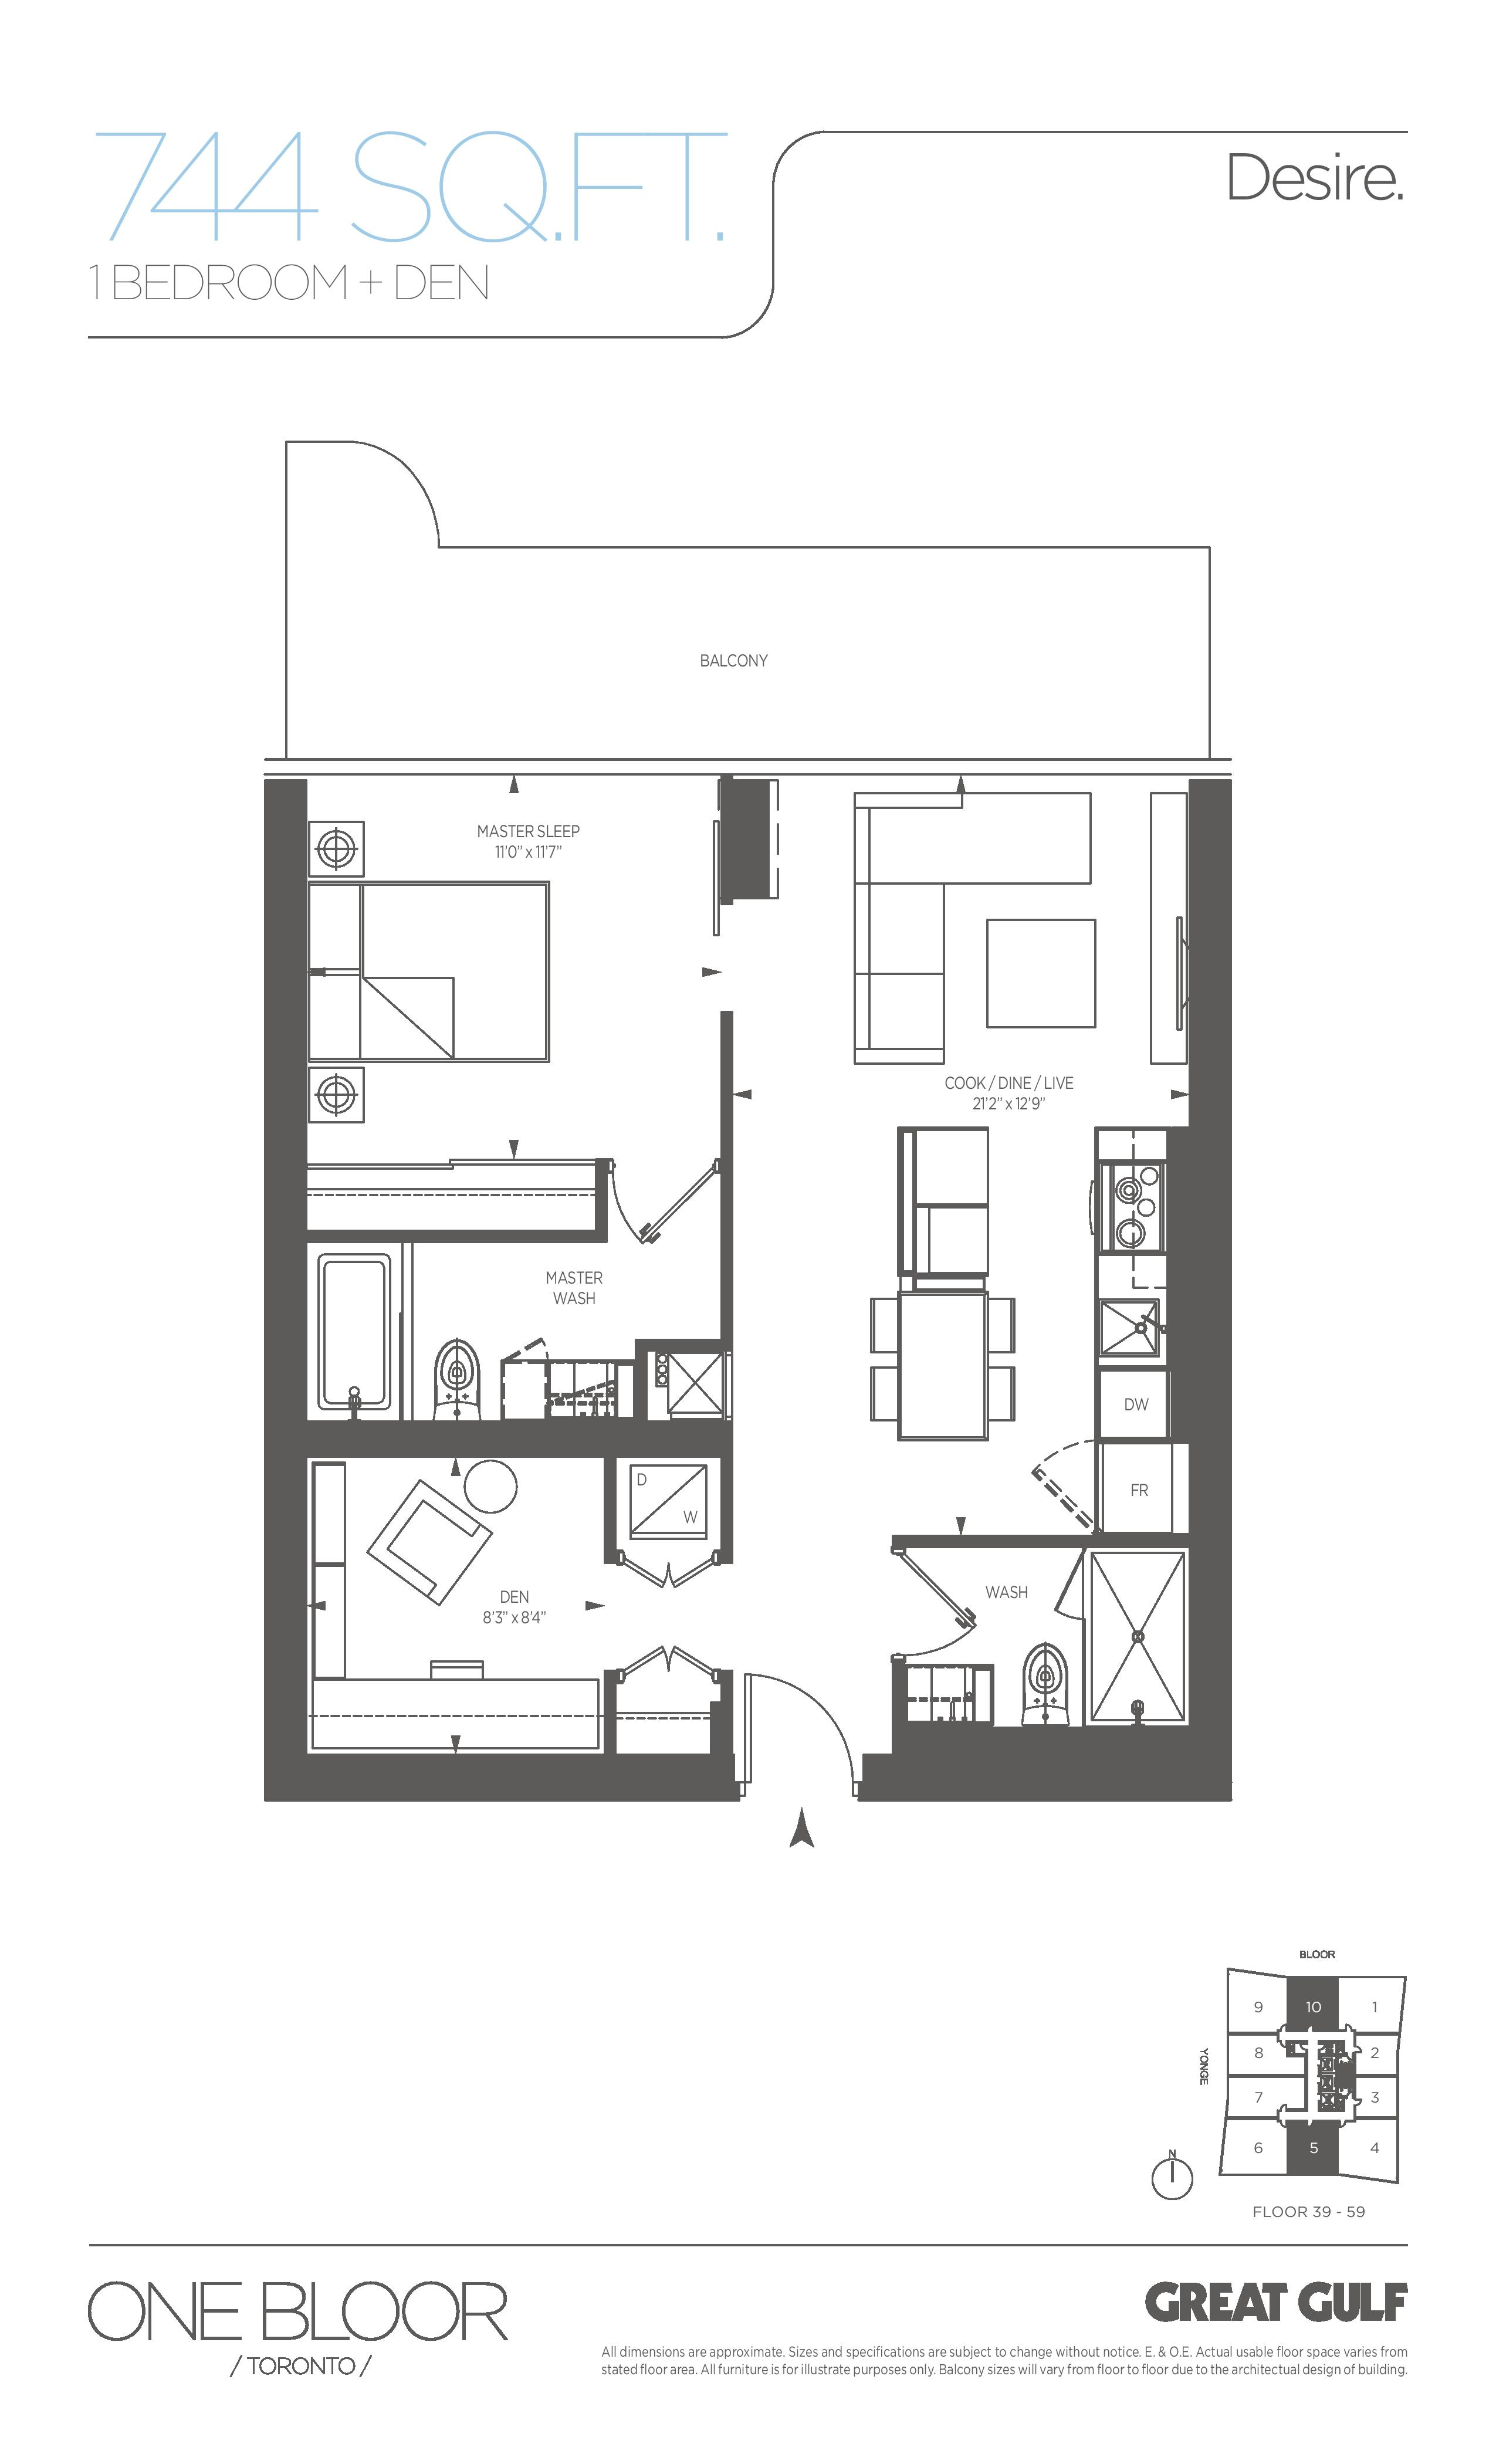 Desire Floor Plan at One Bloor Condos - 744 sq.ft